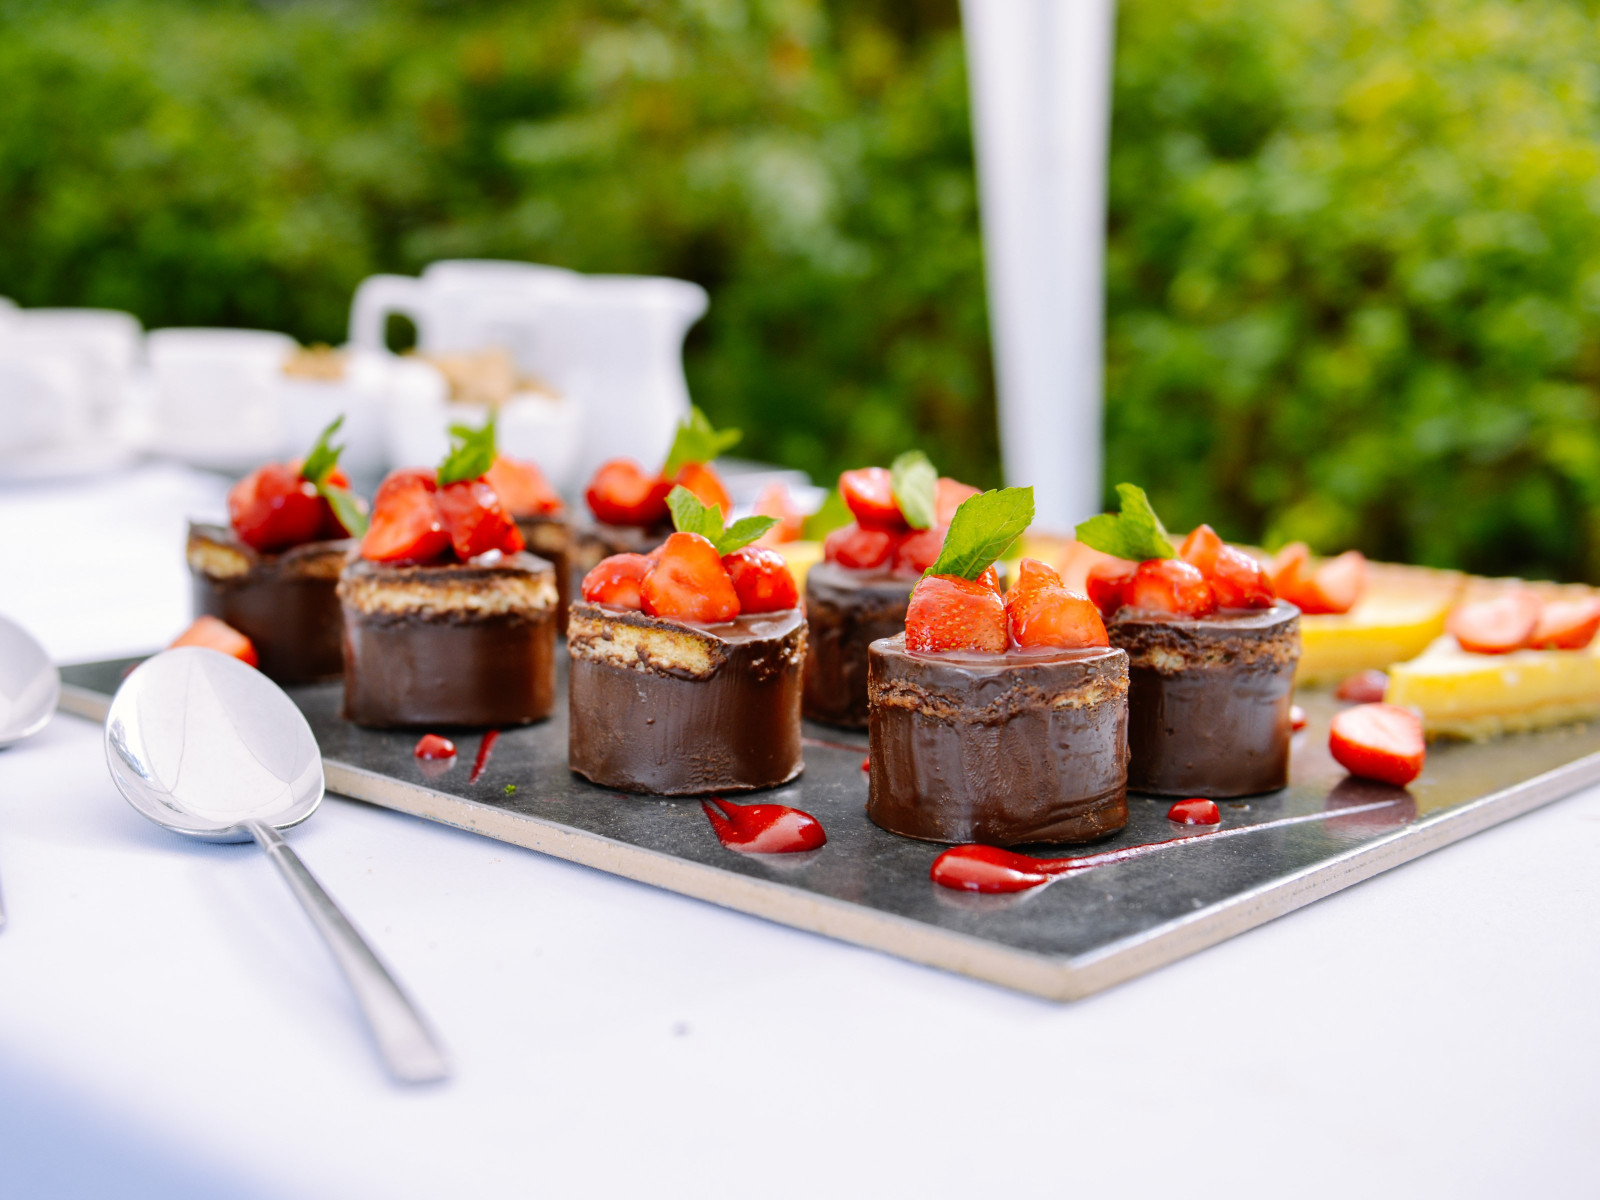 Chocolate cakes with strawberries | 1600x1200 wallpaper